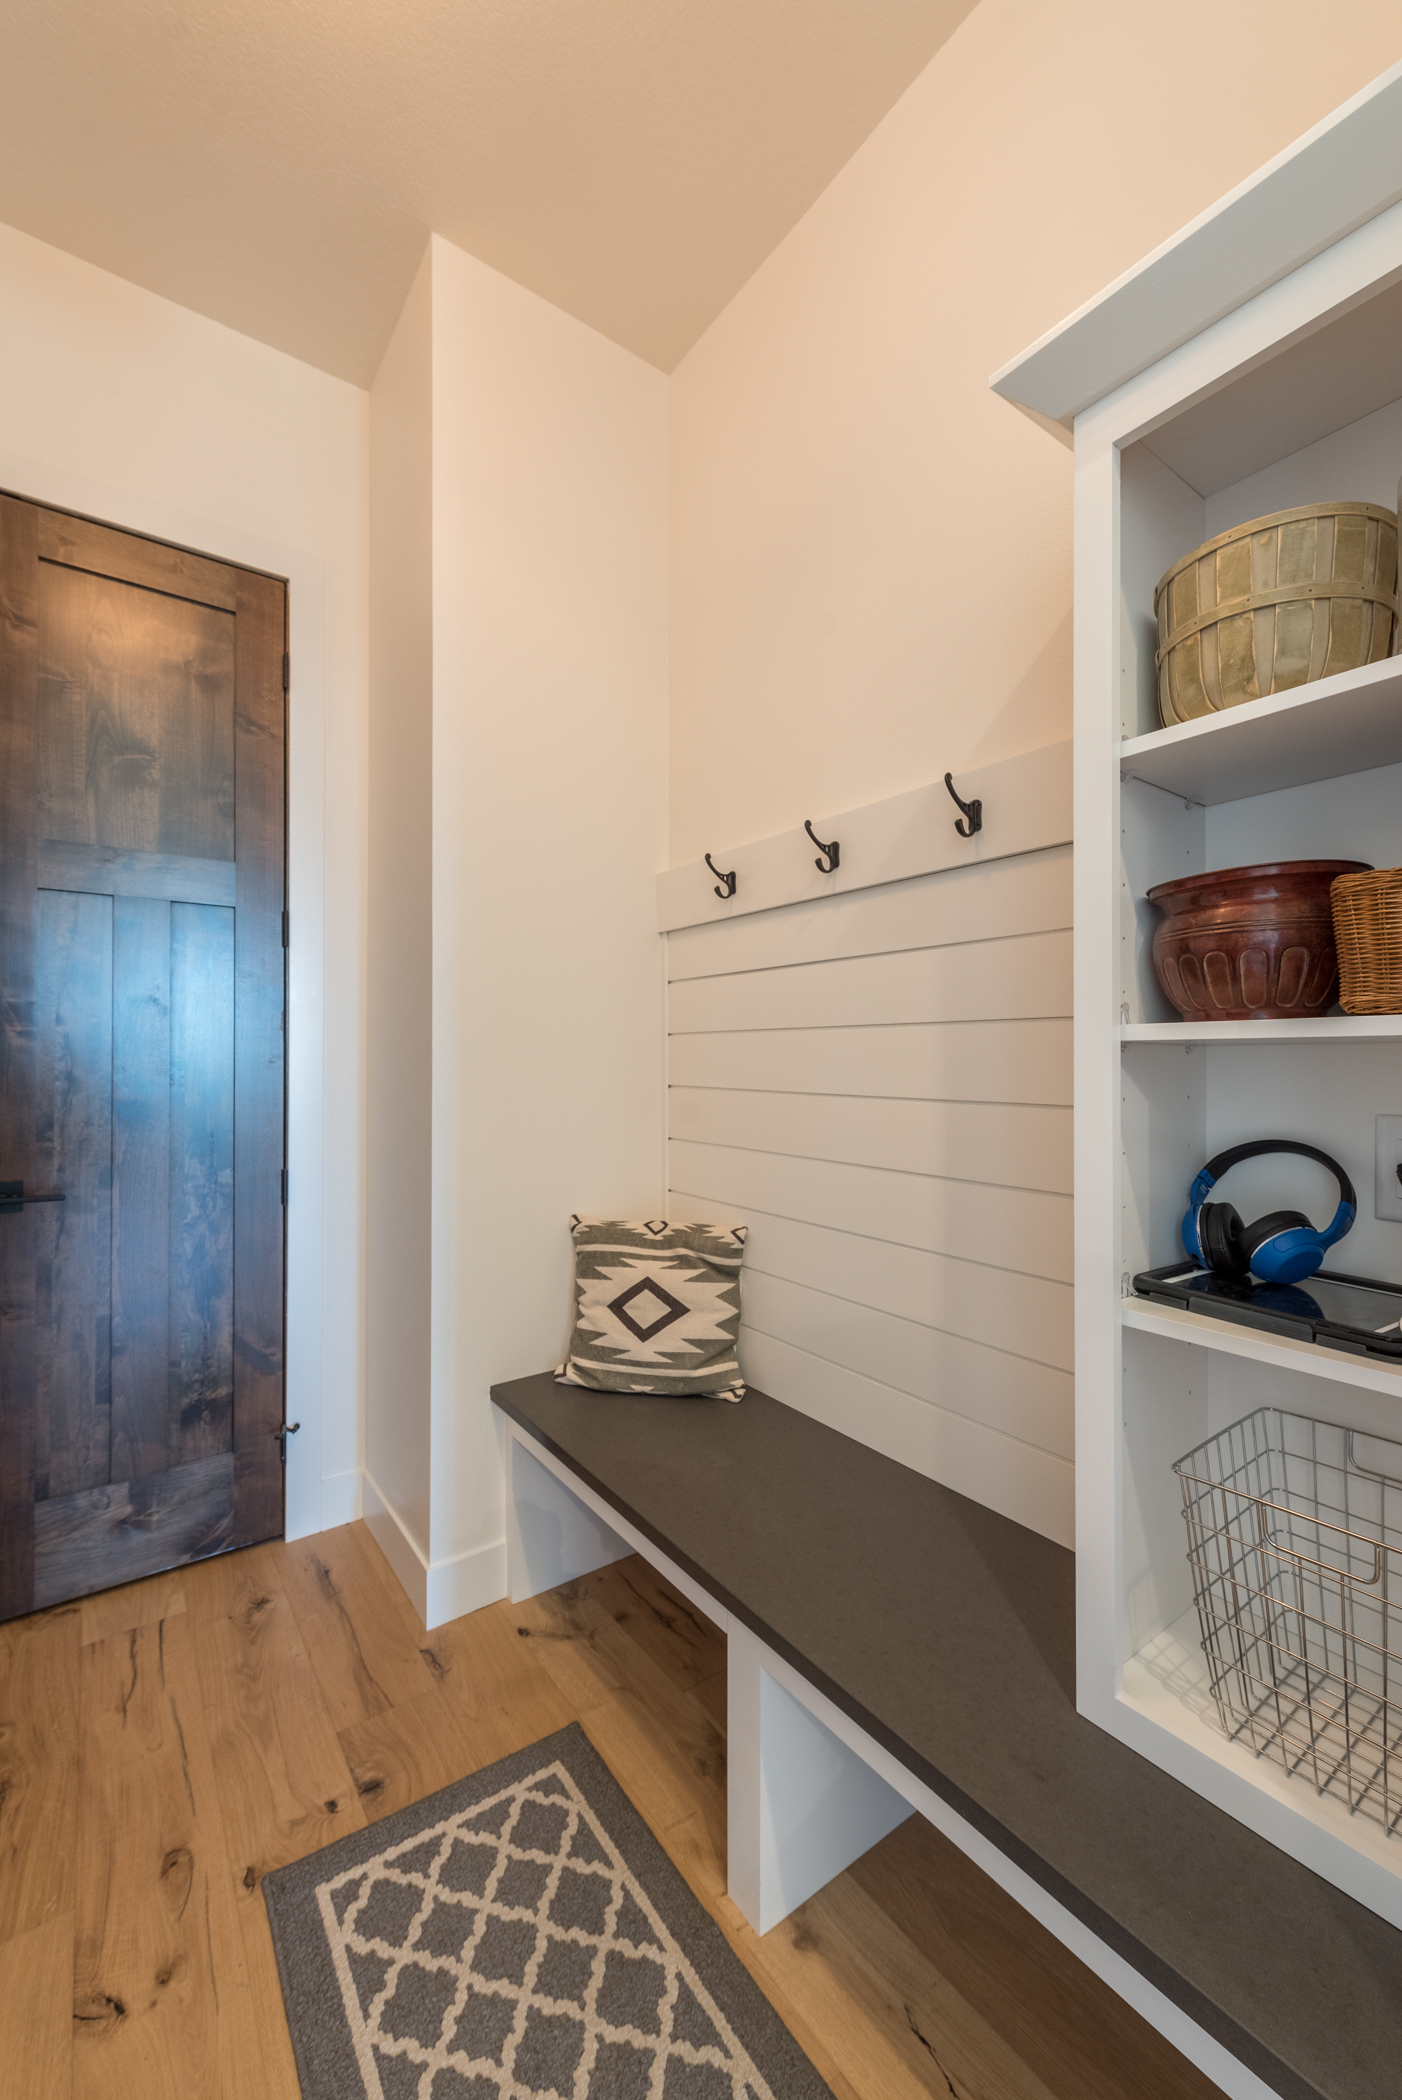 Entryway mudroom with shiplap paneling, bench and cubbies